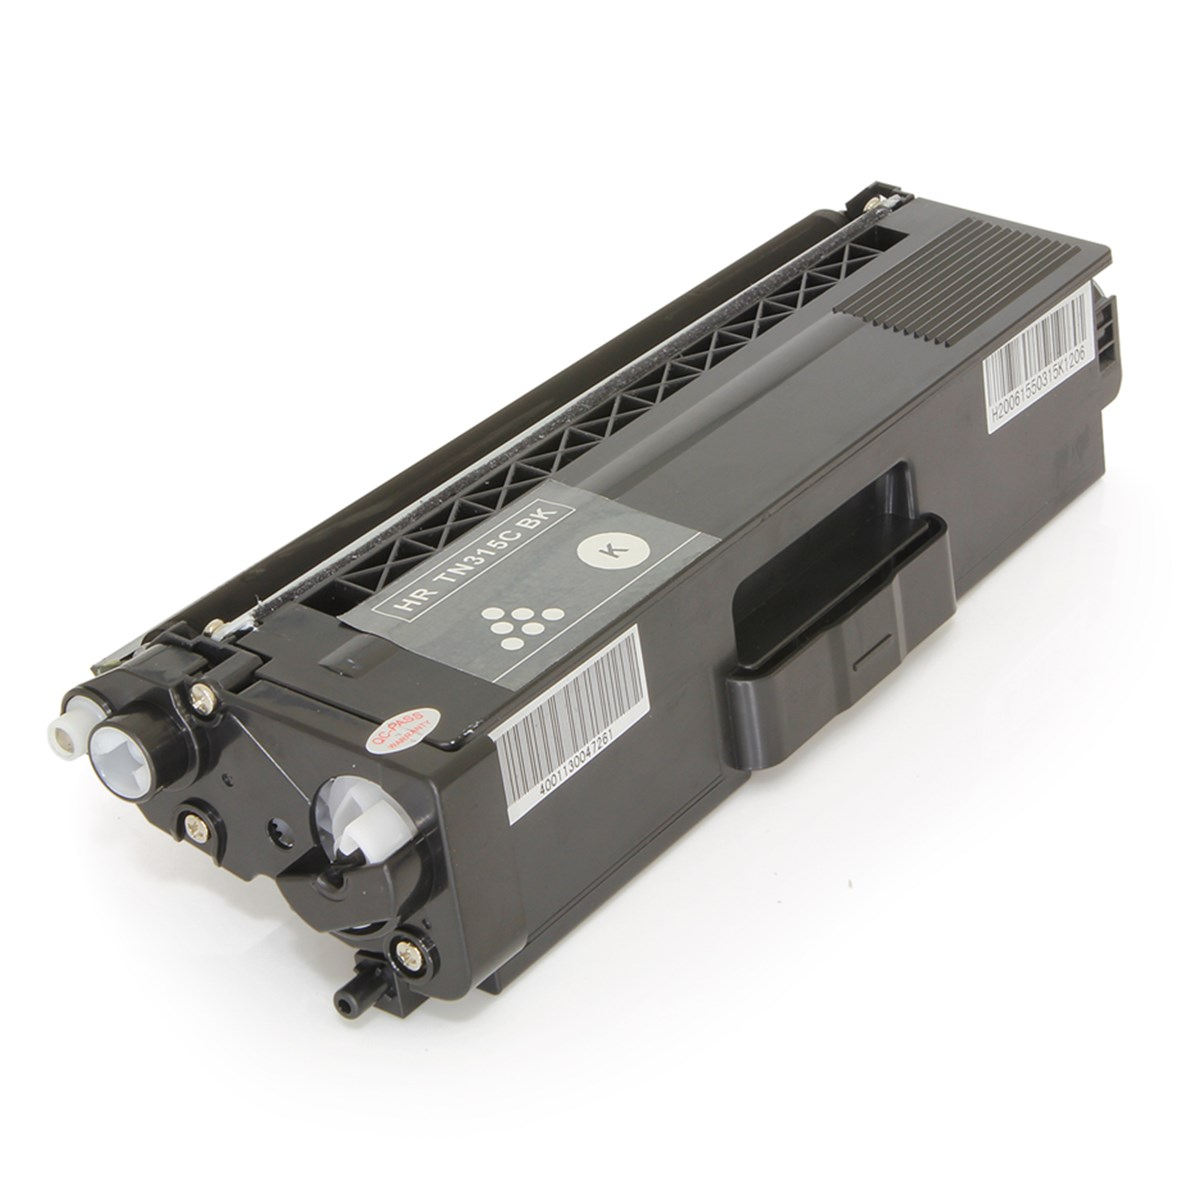 Compativel: Toner novasupri Brother TN315 HL4140 HL4150 HL4570 MFC9970 MFC9460 Preto